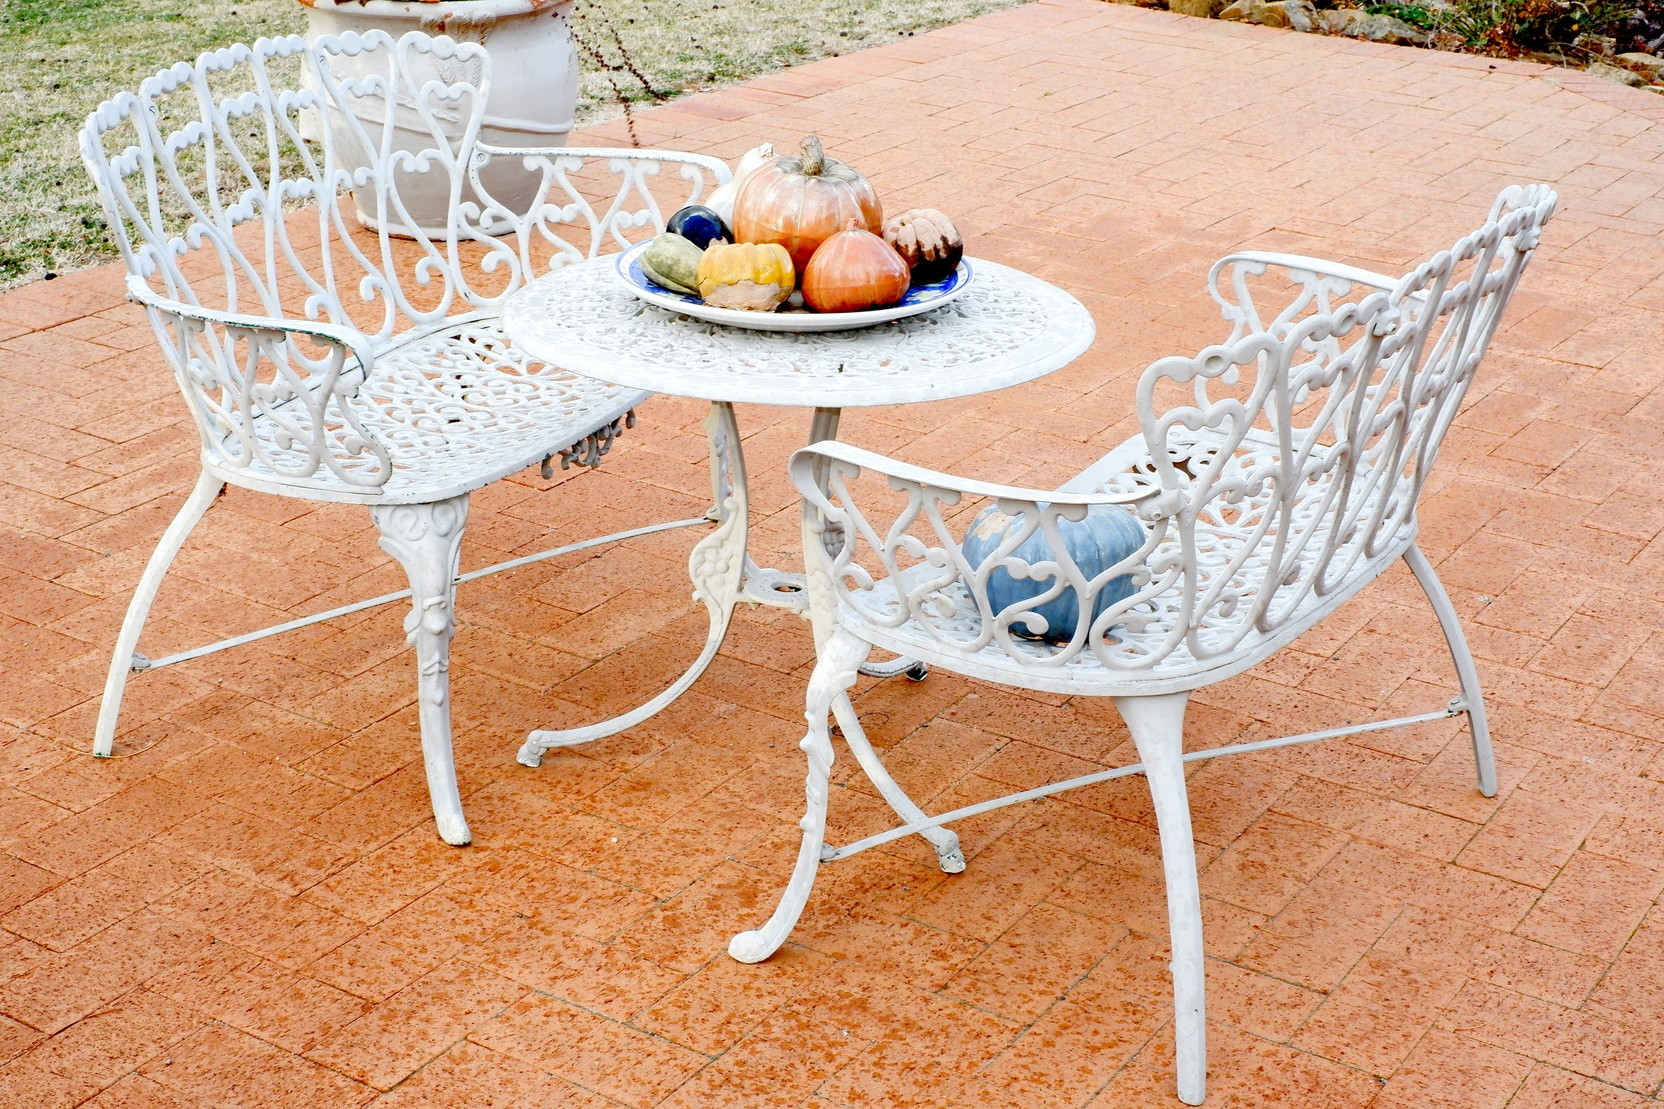 'Vintage Cast Metal Alloy Outdoor Setting'